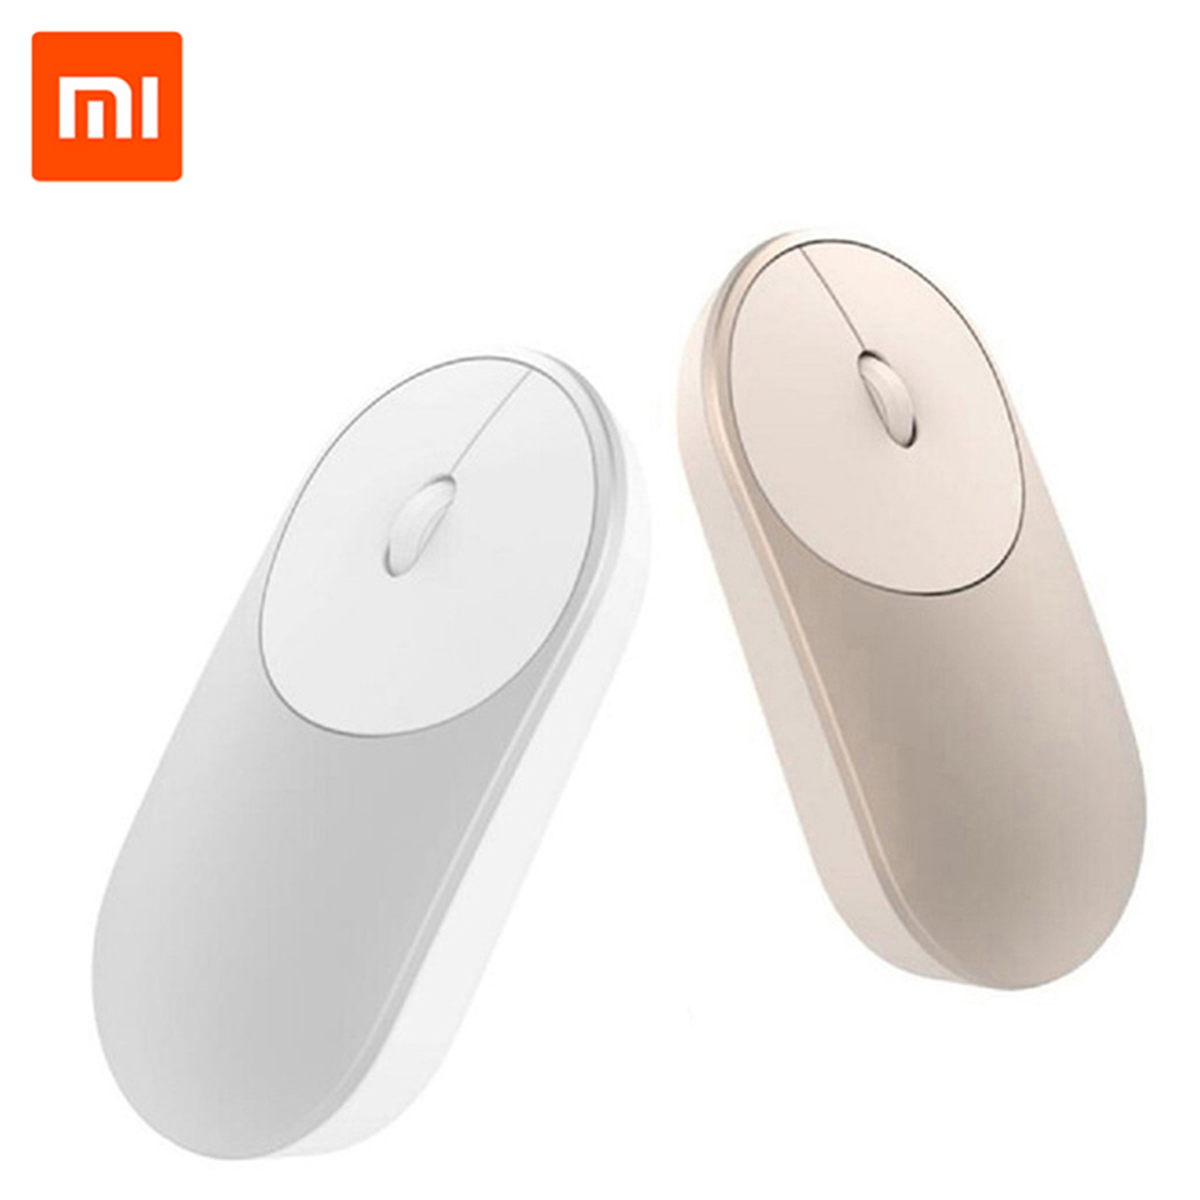 100% Original Xiaomi Mi Portable Mini Wireless Mouse bluetooth 4.0 2.4G Dual Mode Connectivity